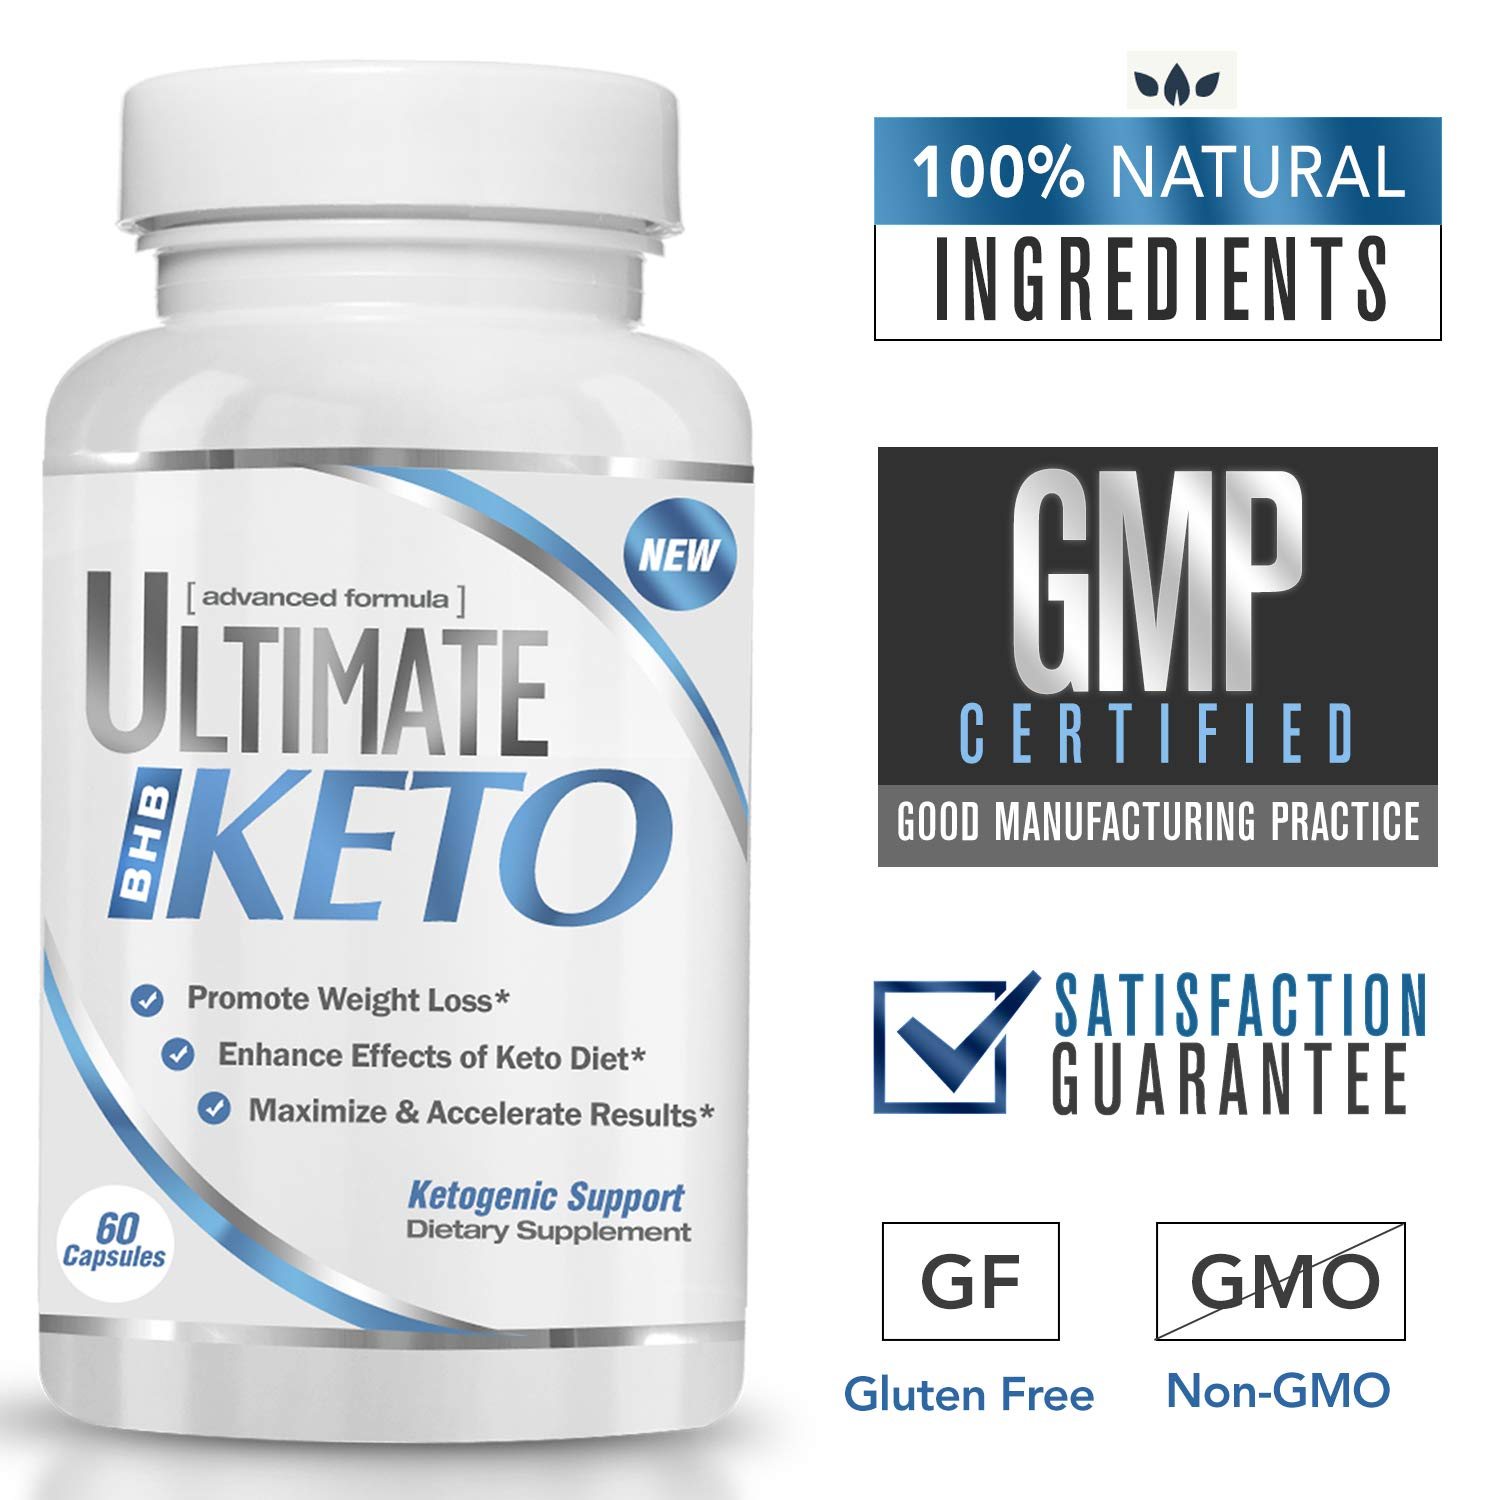 Amazon.com: Ultimate Keto - BHB Exogenous Ketones Supplement - Weight Loss and Keto Diet Support - Enter Fast Ketosis - Burn Fat - Beta-Hydroxybutyrate ...